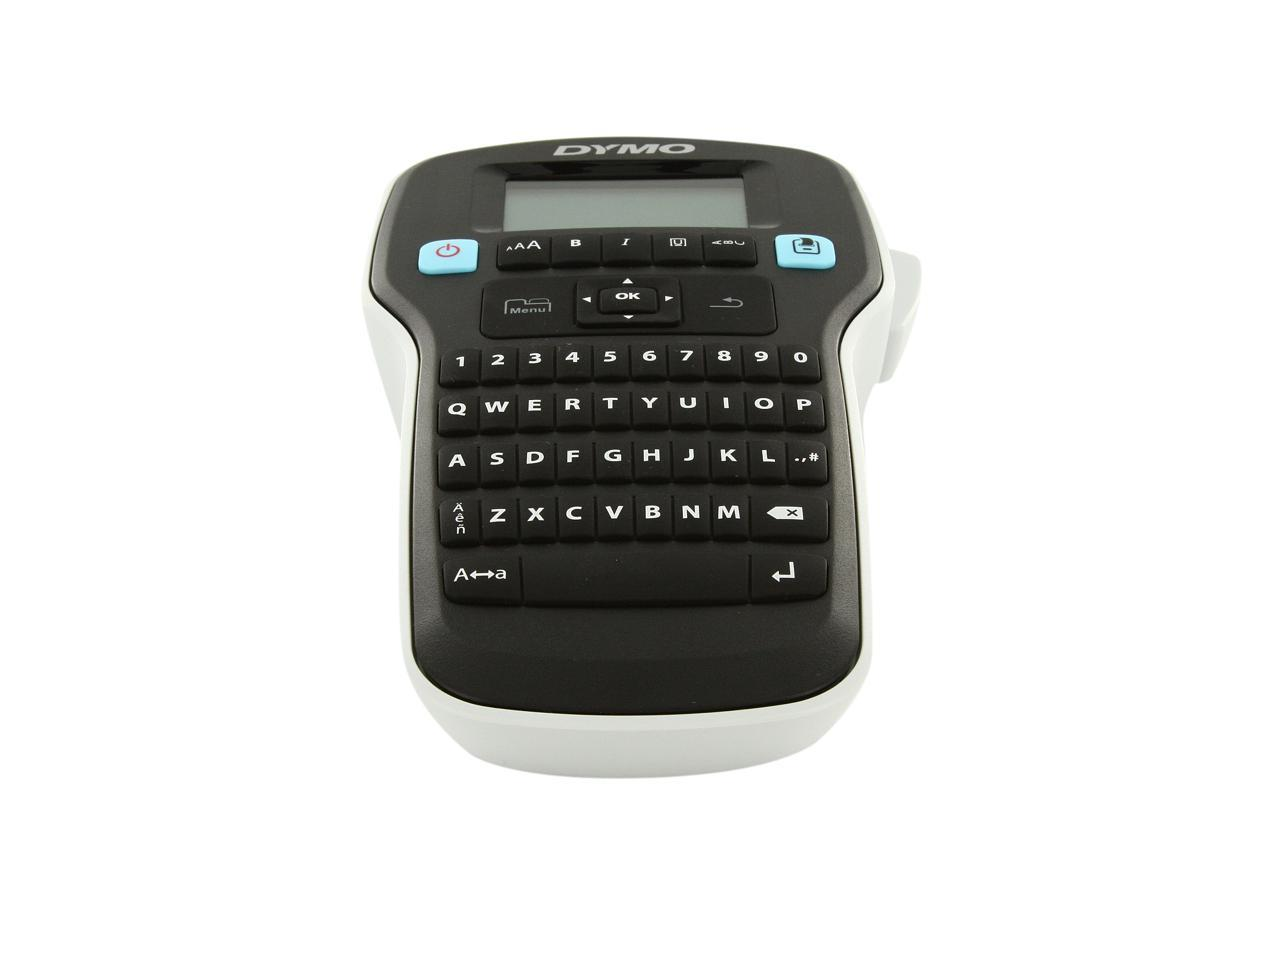 LabelManager 160 Portable Label Maker QWERTY Keyboard for Home /& Office Organization Easy-to-Use Renewed Large Display One-Touch Smart Keys DYMO Label Maker